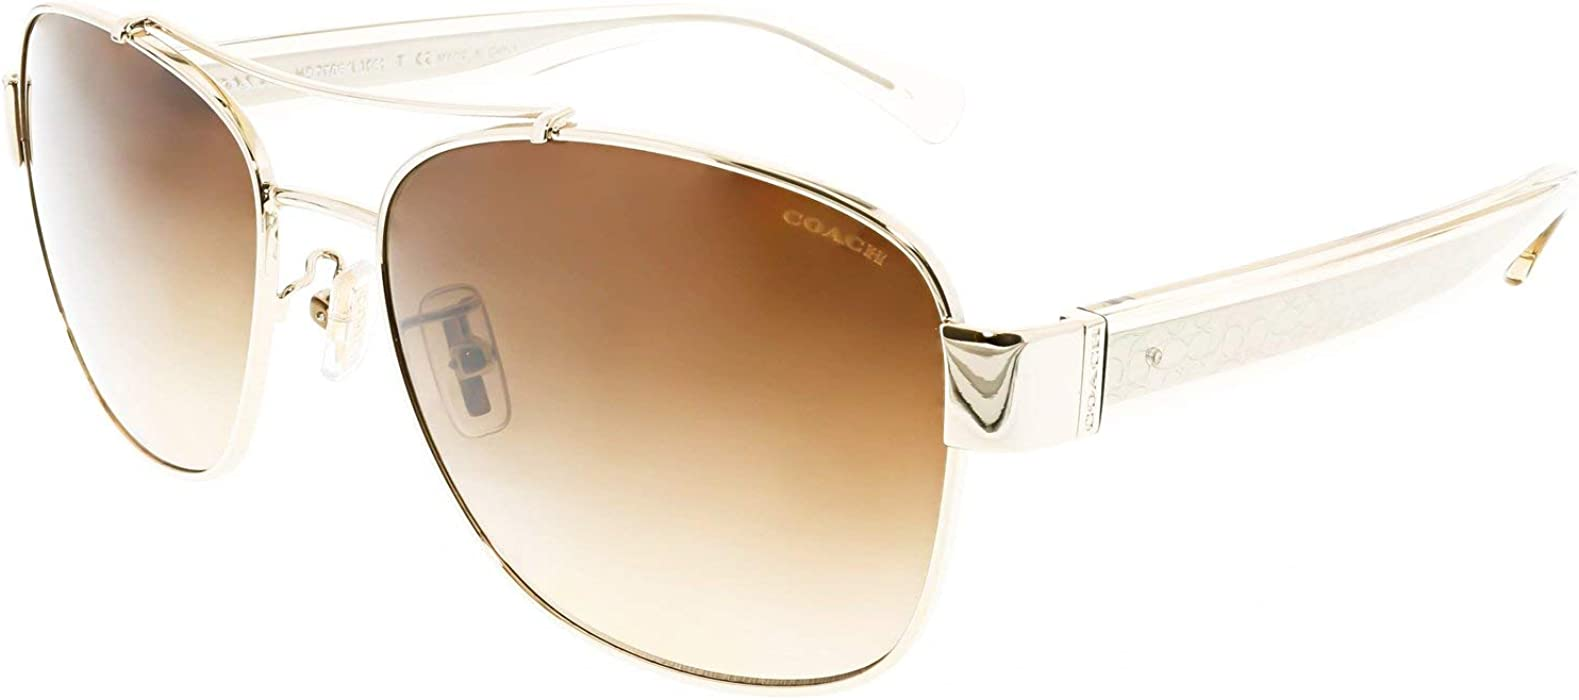 2d099daae2e Coach Womens Sunglasses (HC7064) Gold Brown Metal - Non-Polarized - 56mm